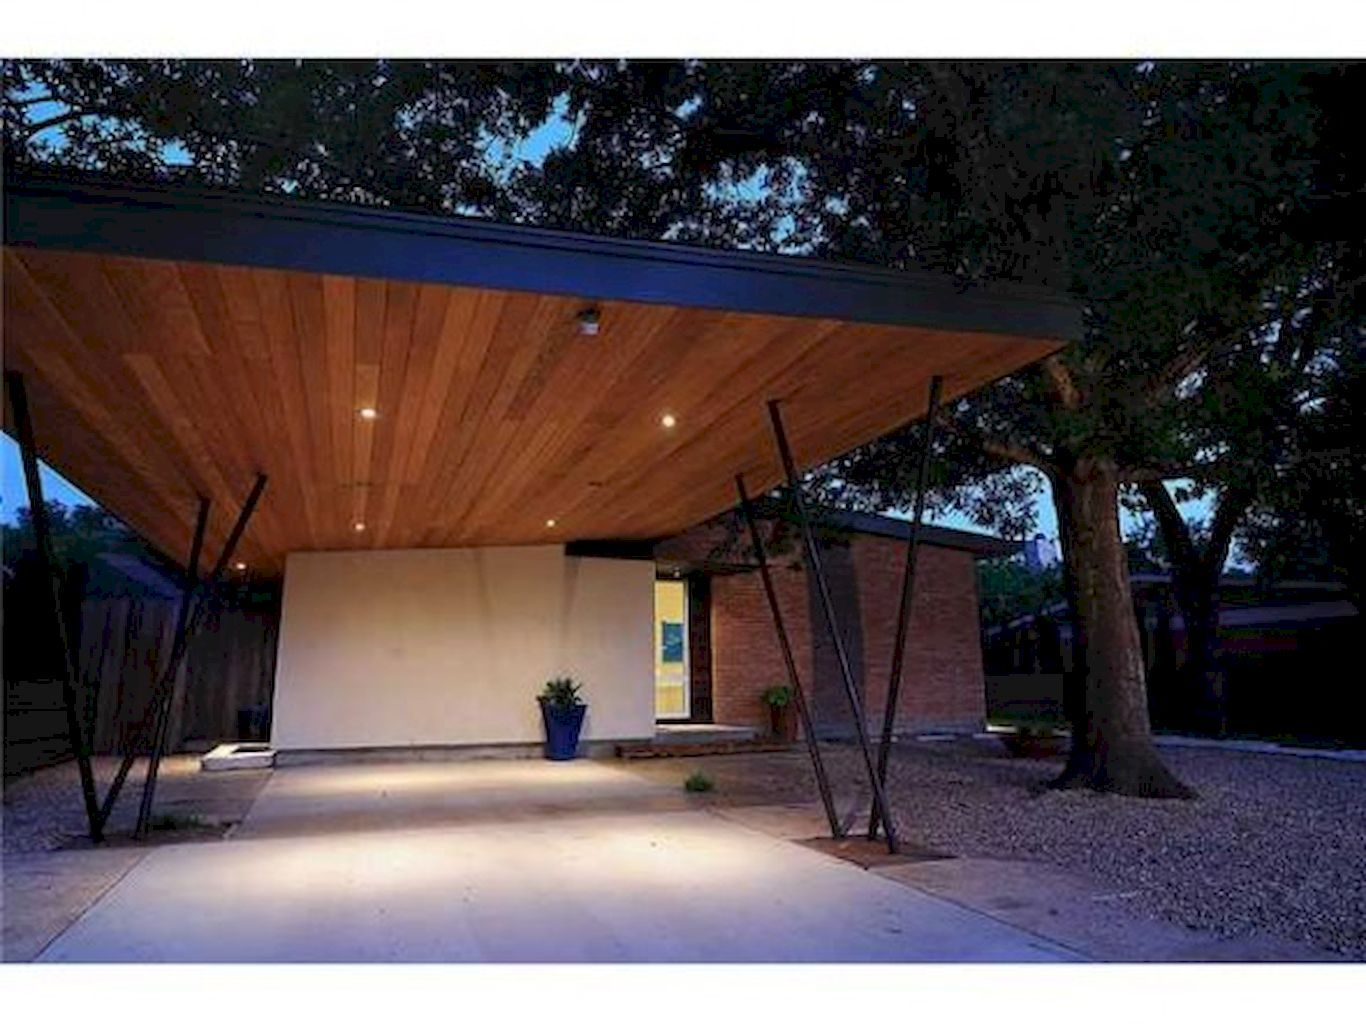 55 adorable modern carports garage designs ideas more modern awesome 55 adorable modern carports garage designs ideas https decorapatio com